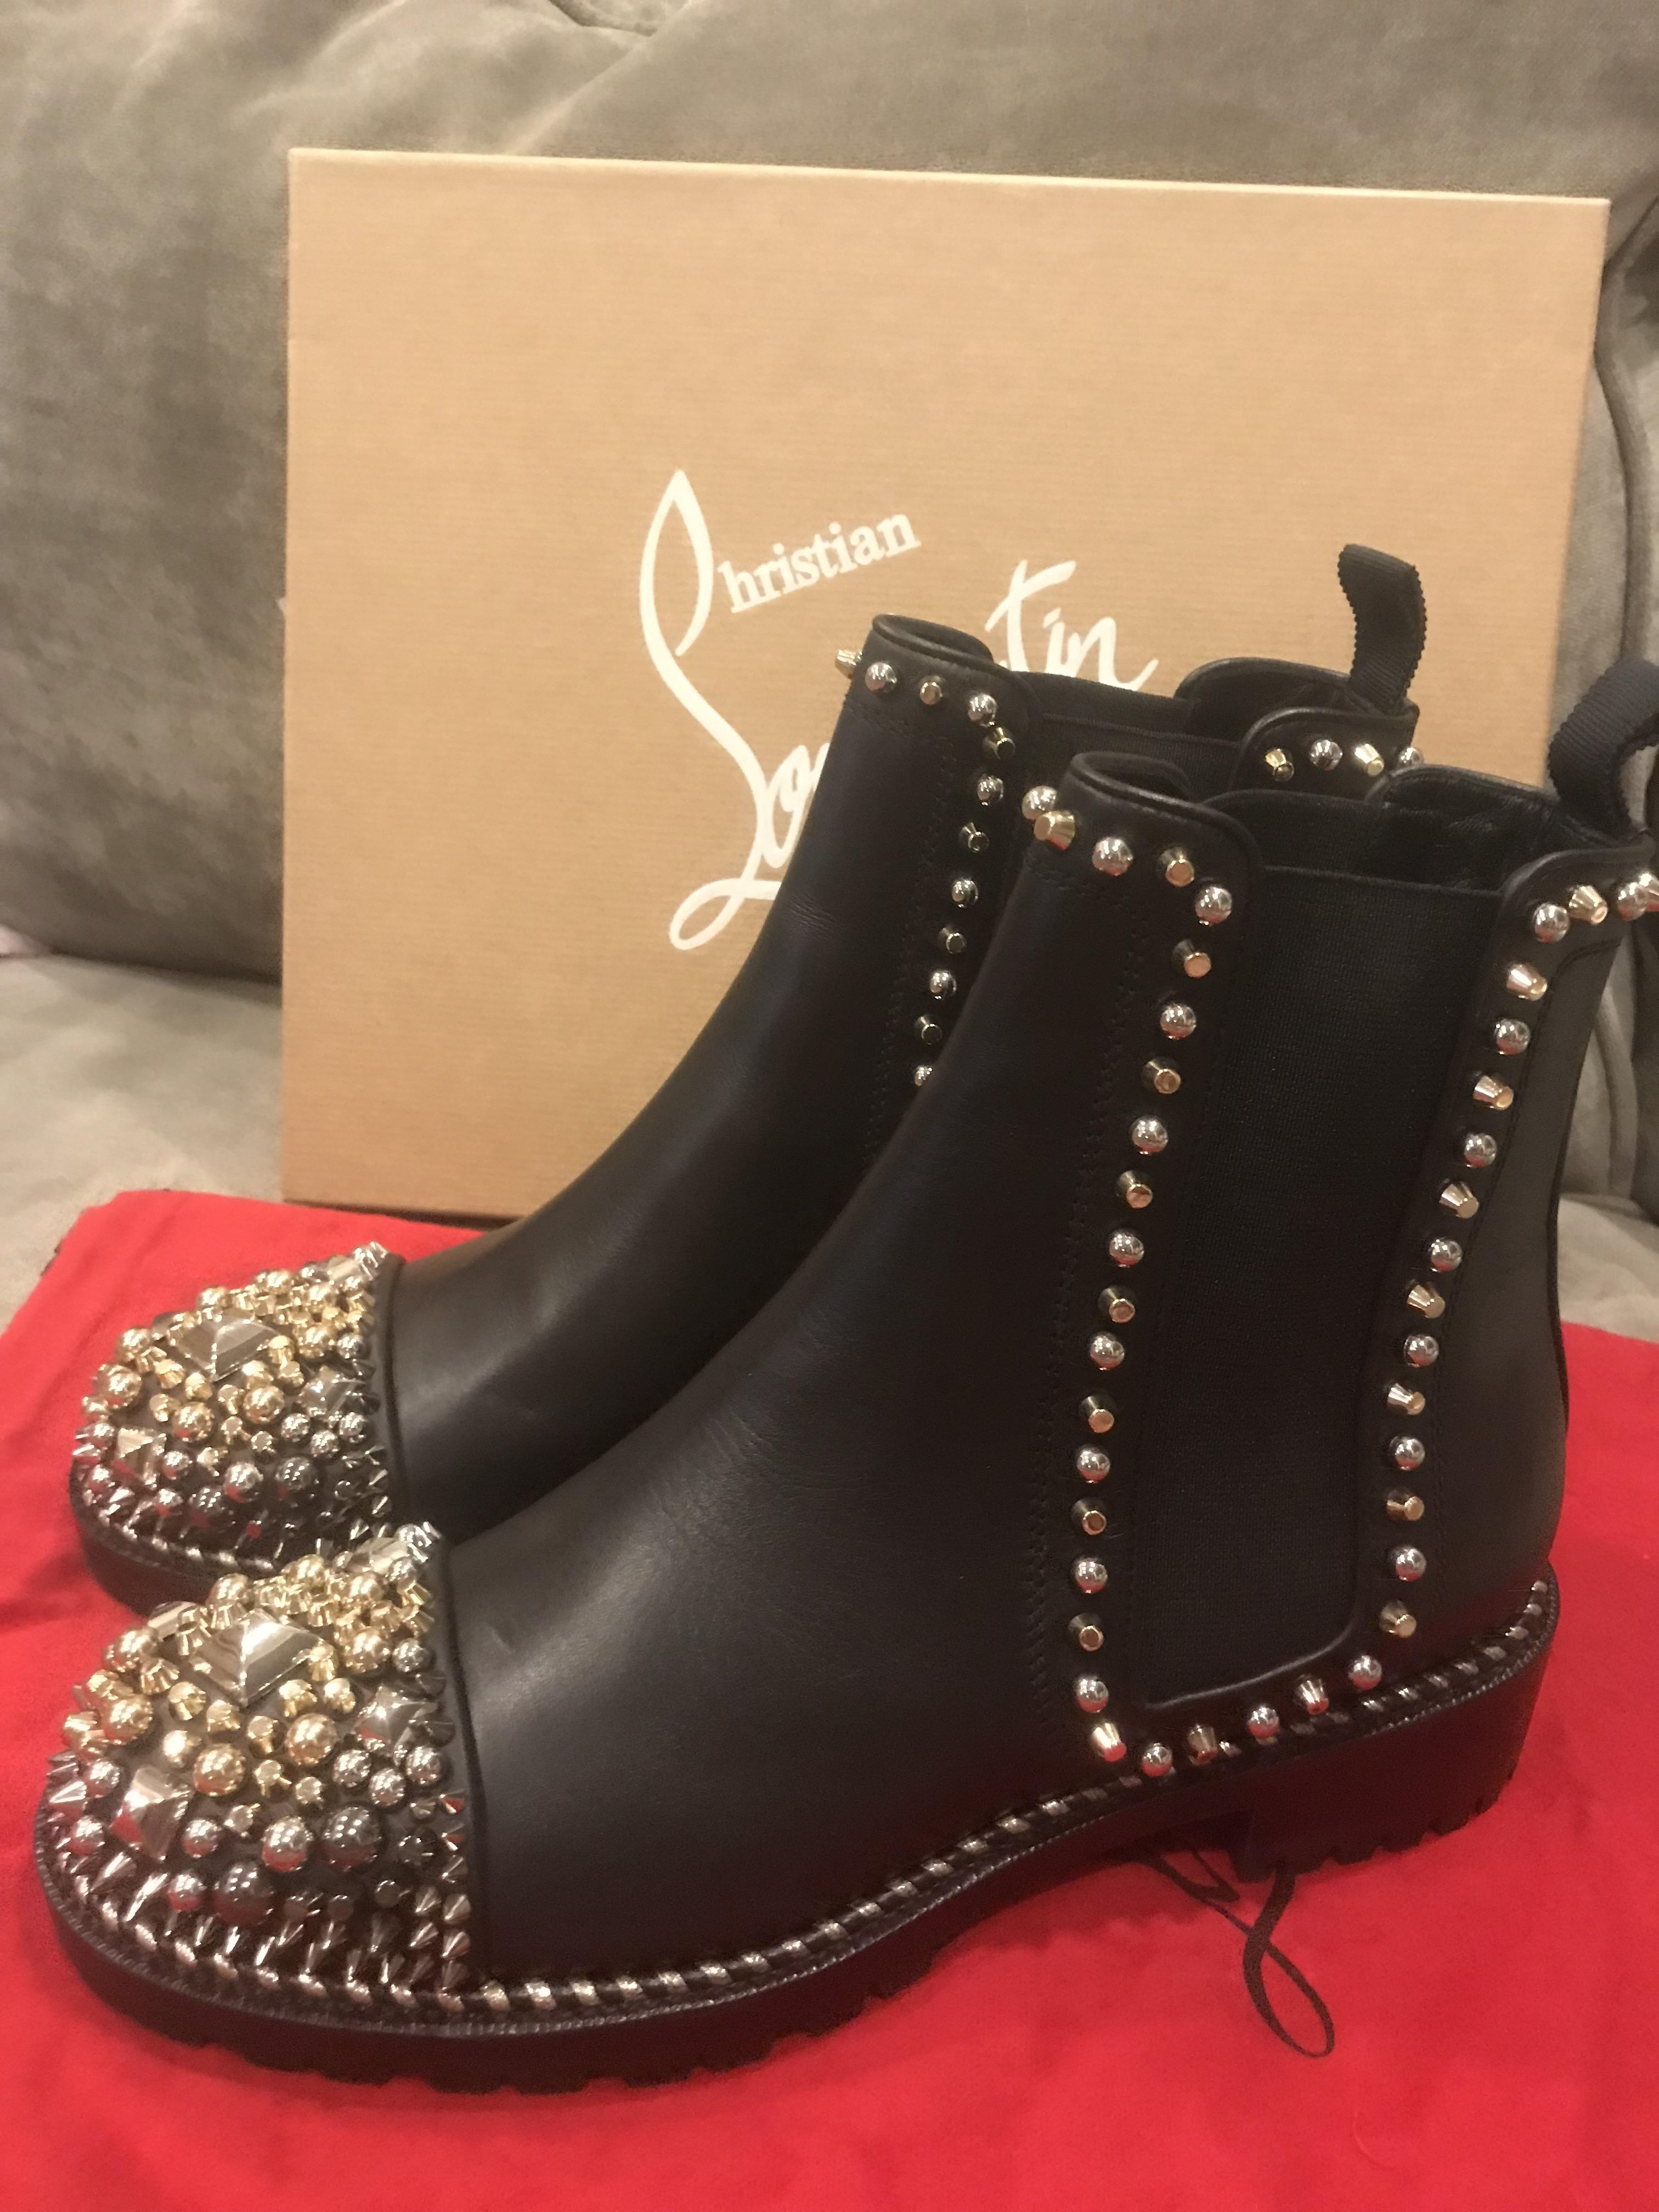 884147c8ef07 ... free shipping black flat ankle studded christian a leather booties  chasse boots chelsea clou louboutin gx57w04nq1